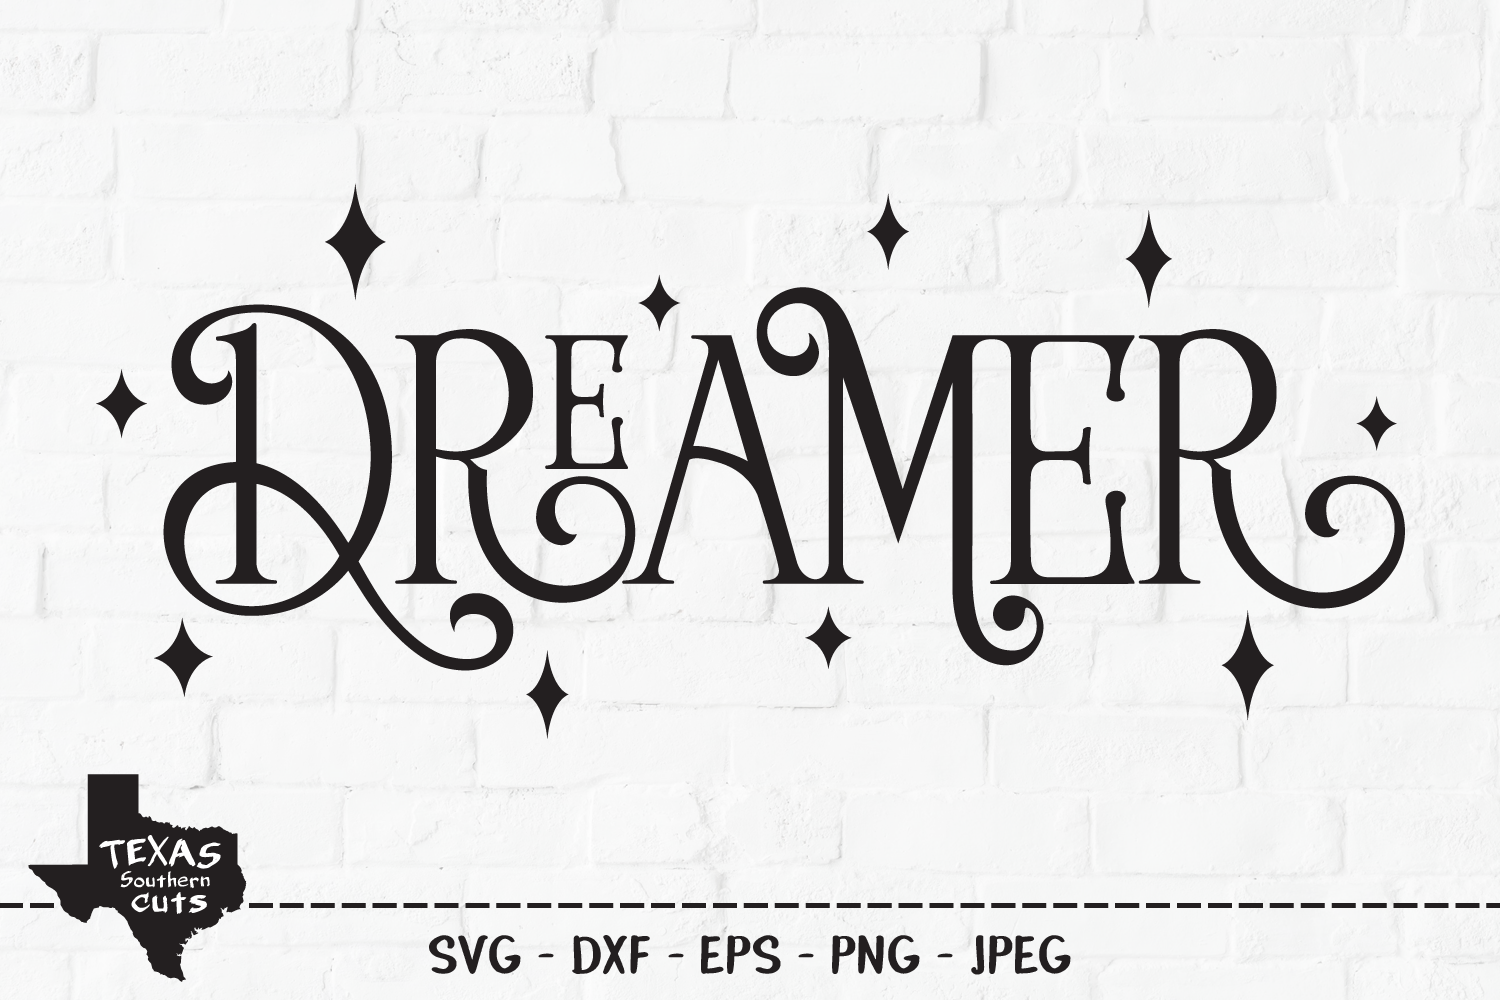 Download Free Dreamer Shirt Design Graphic By Texassoutherncuts Creative for Cricut Explore, Silhouette and other cutting machines.